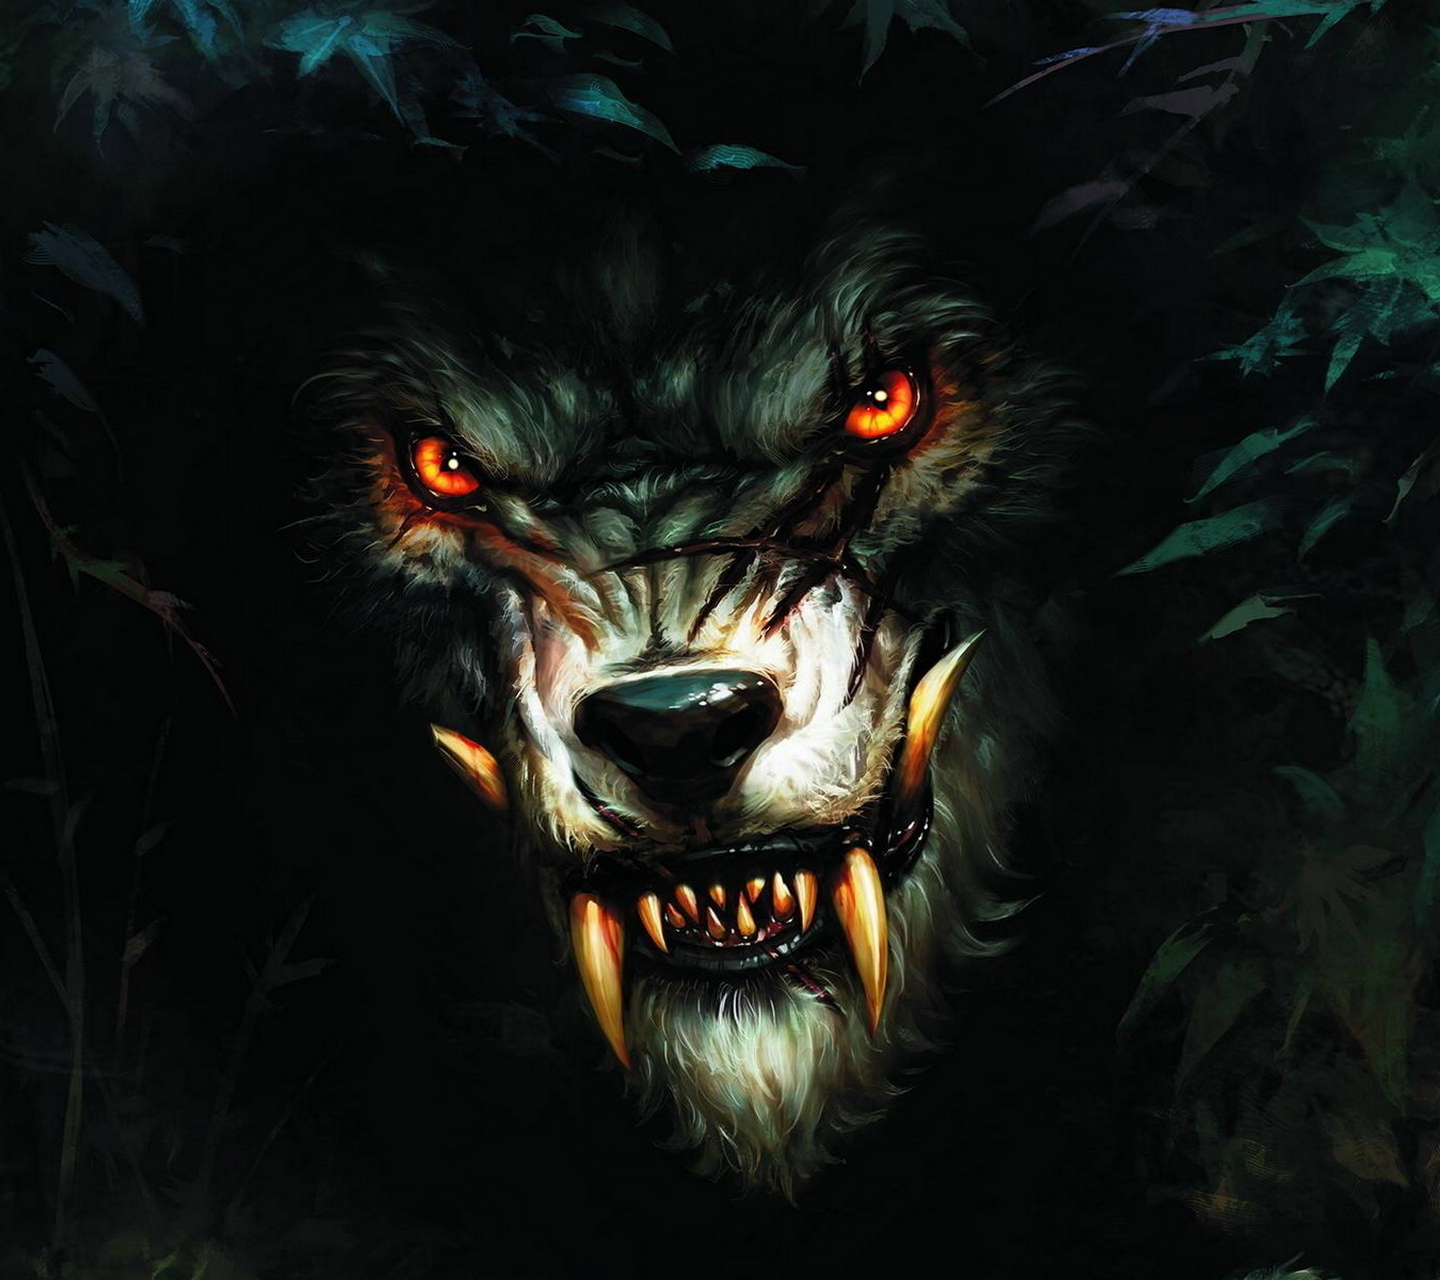 16168 download wallpaper Animals, Wolfs, Art, Pictures screensavers and pictures for free